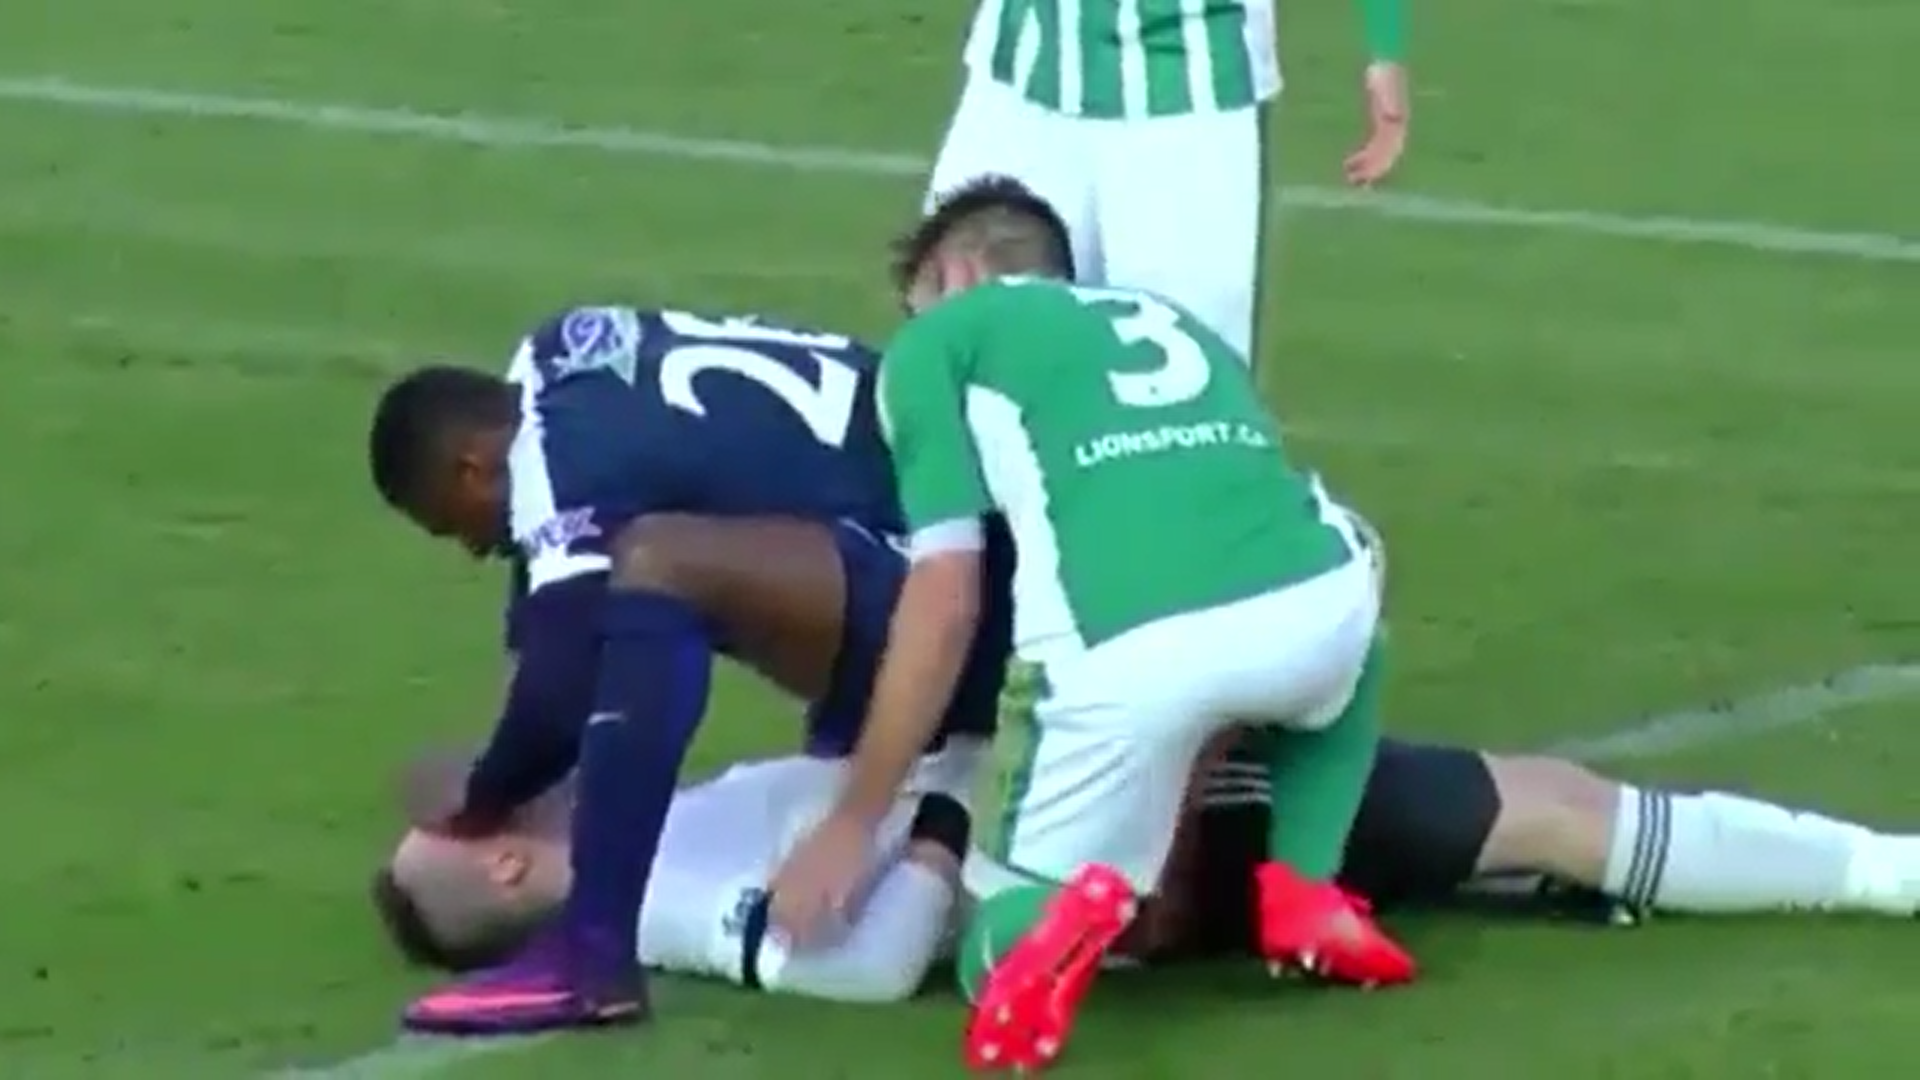 VIDEO Hero lifesaver Kone saves goalkeeper from choking to death